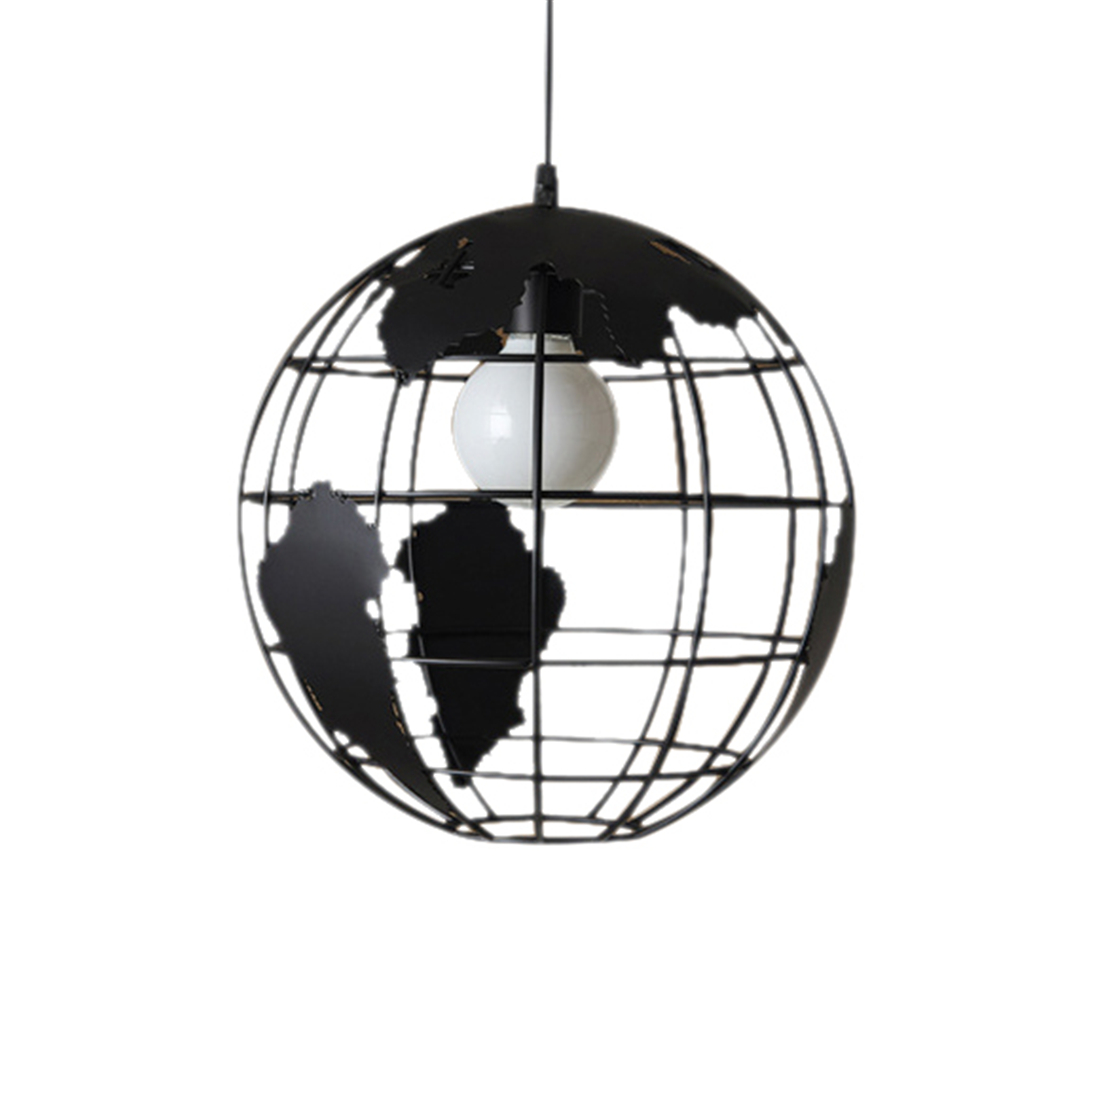 Black Creative Loft Continental Single Retro Globe Chandelier Modern Metallic Lounge Casual Ceiling LampBlack Creative Loft Continental Single Retro Globe Chandelier Modern Metallic Lounge Casual Ceiling Lamp